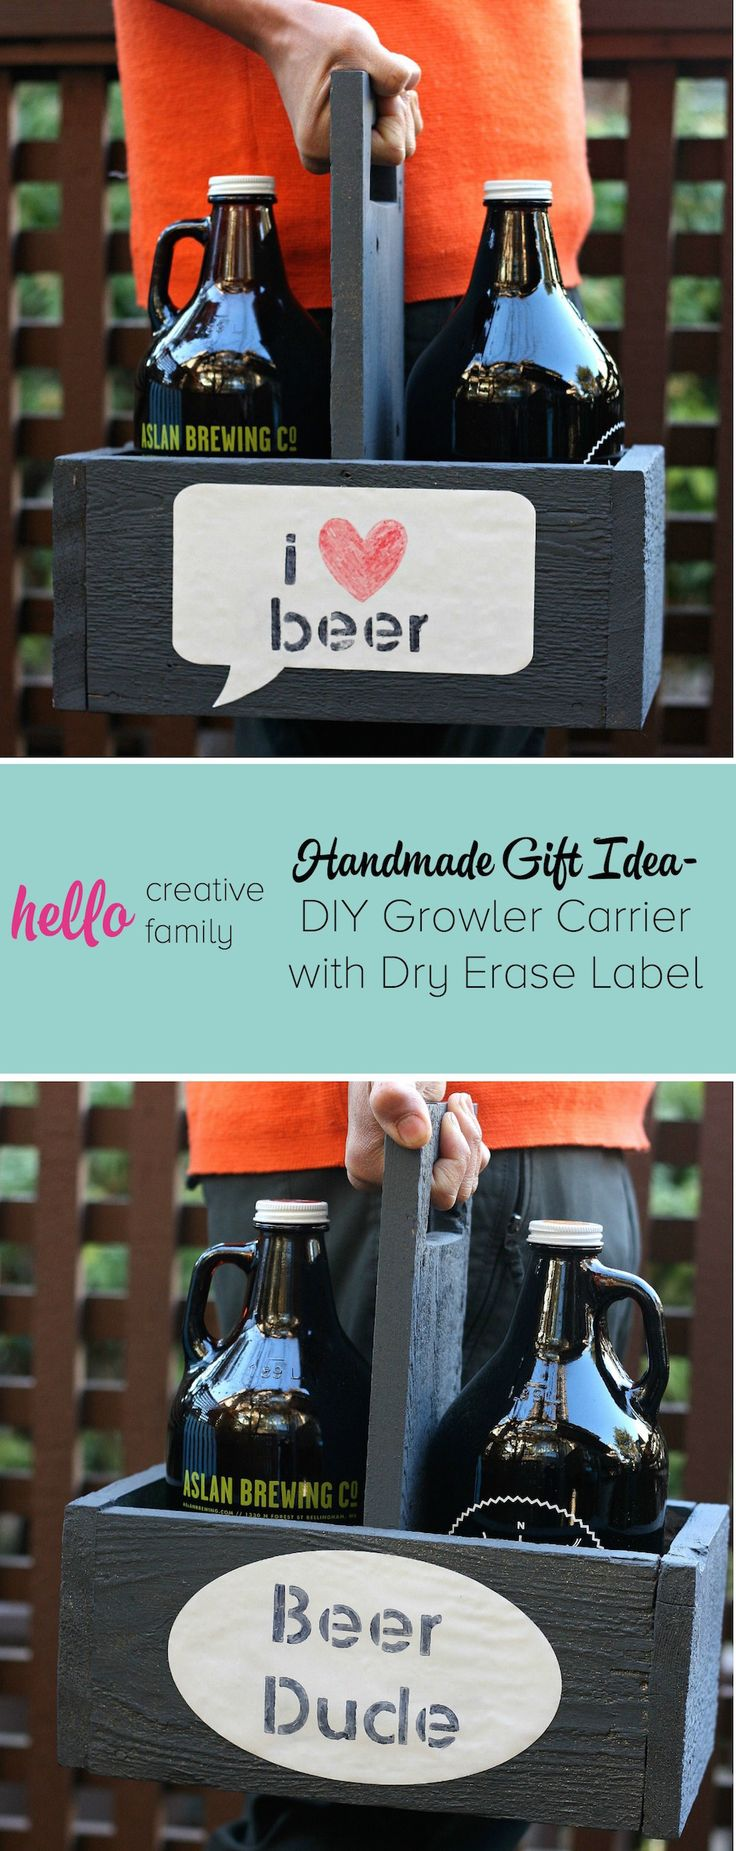 188 best fathers day crafts for kids images on pinterest fathers handmade gift idea diy growler carrier with dry erase label solutioingenieria Choice Image